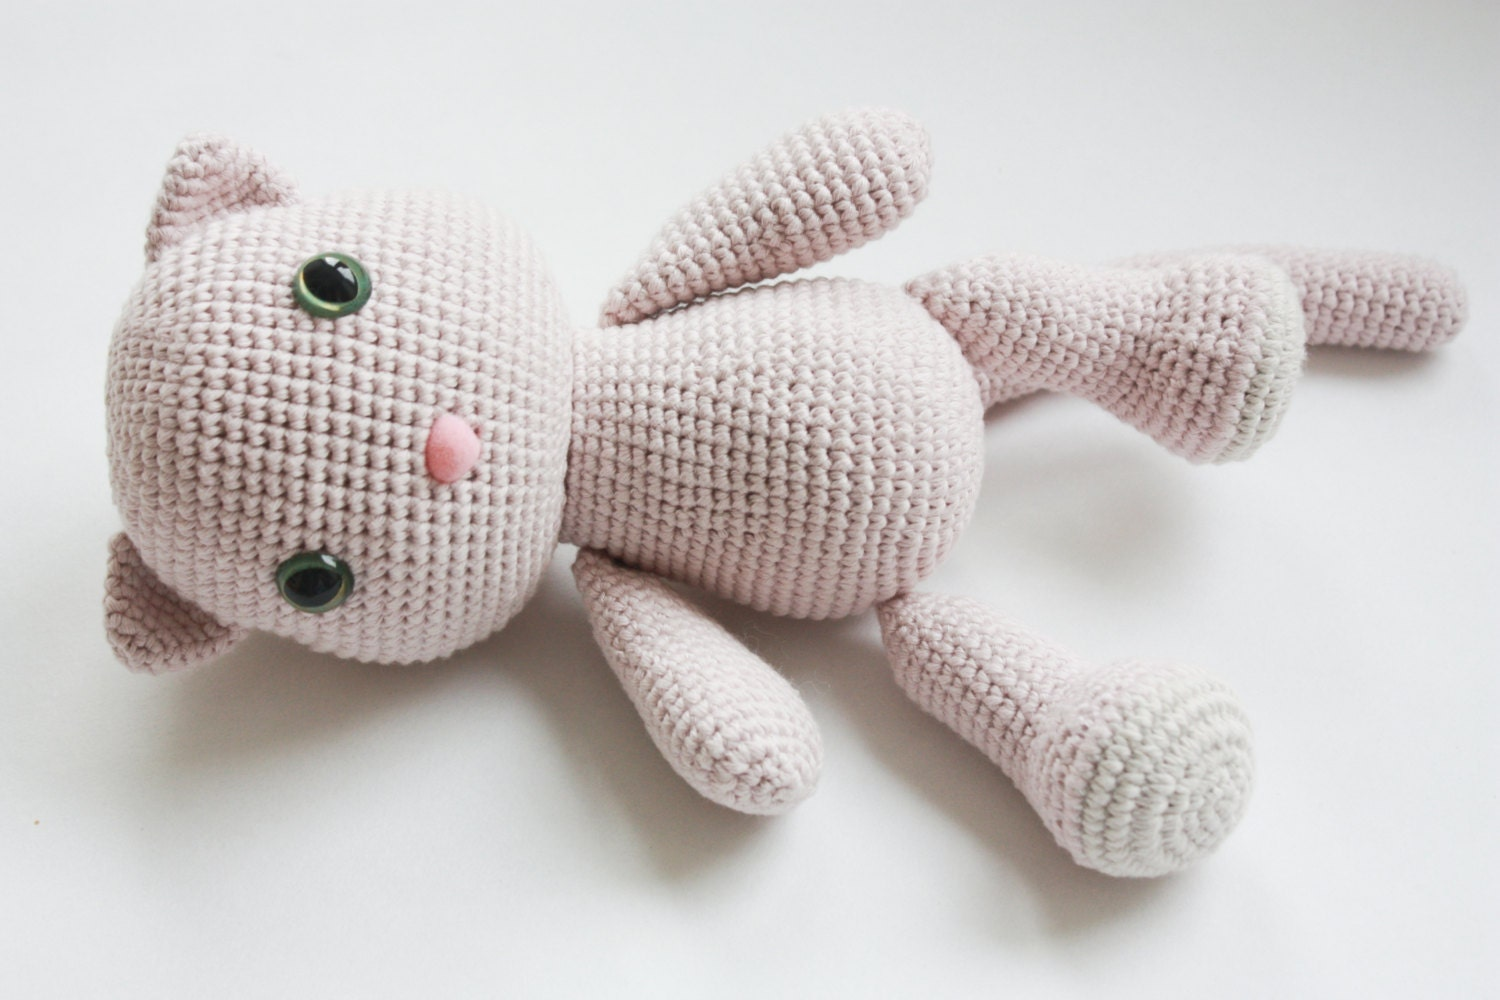 Tutorial Amigurumi Kitty : PATTERN Kitty Amigurumi Pattern Cat Crochet PDF Tutorial